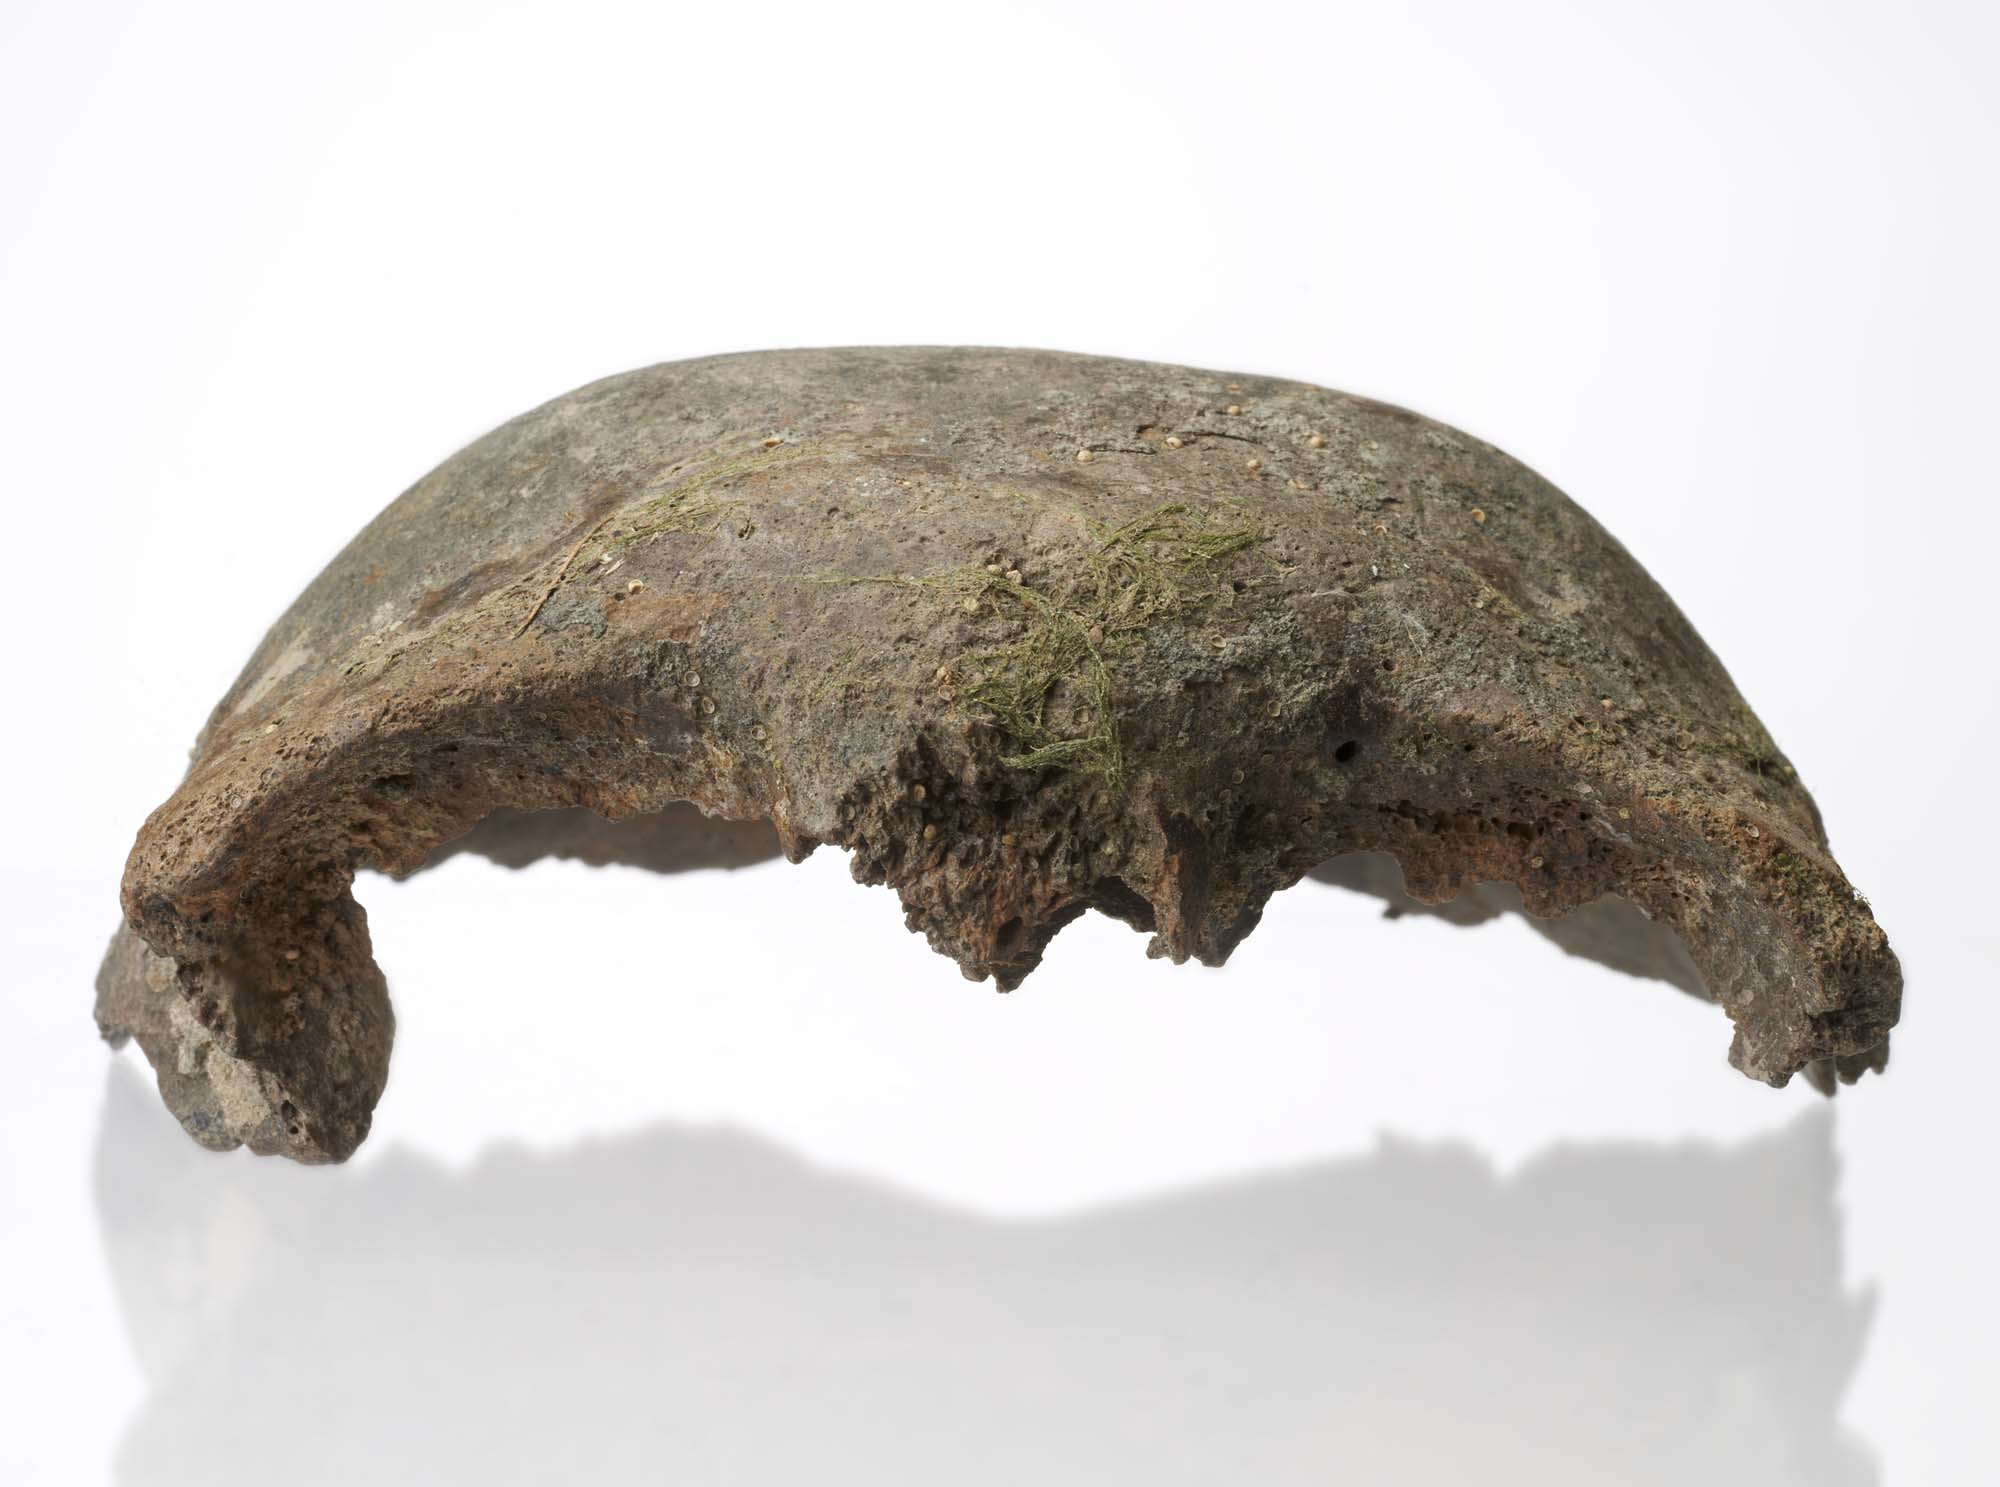 a photo of a skull fragment with seaweed or lichen residue near the front